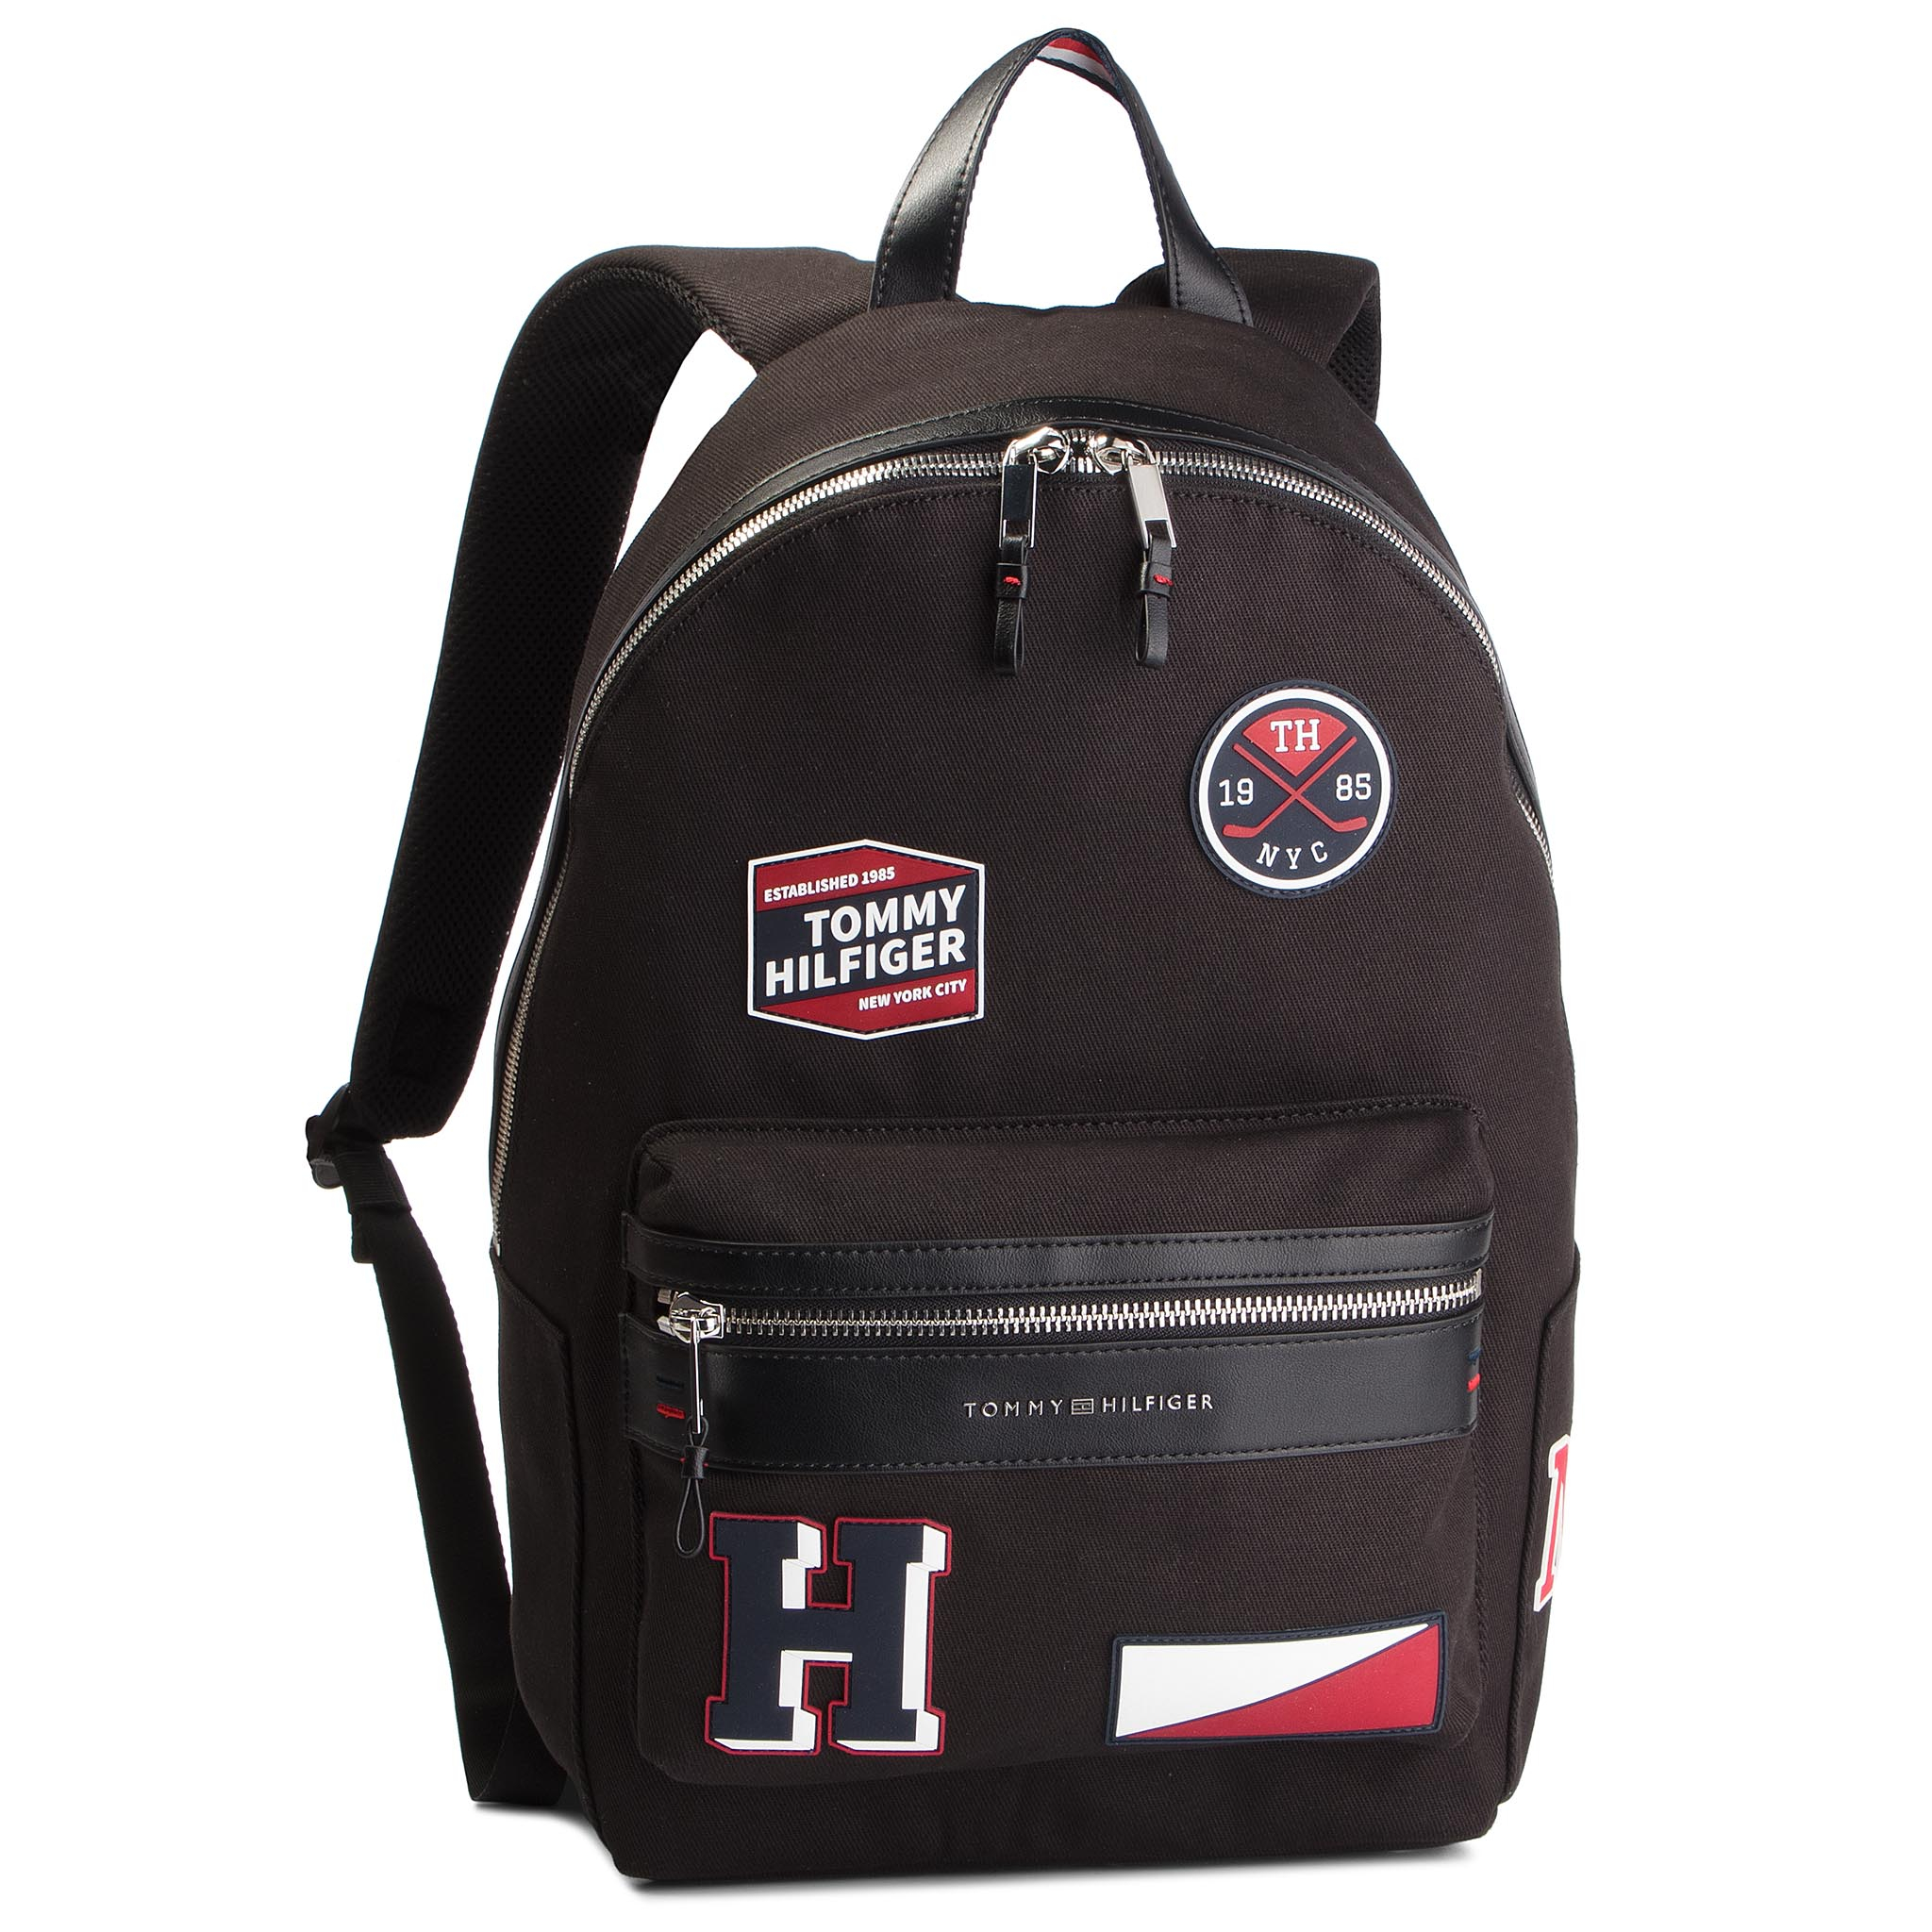 6a04664d67 Batoh TOMMY HILFIGER - Elevated Backpack Patches K60K604420 002